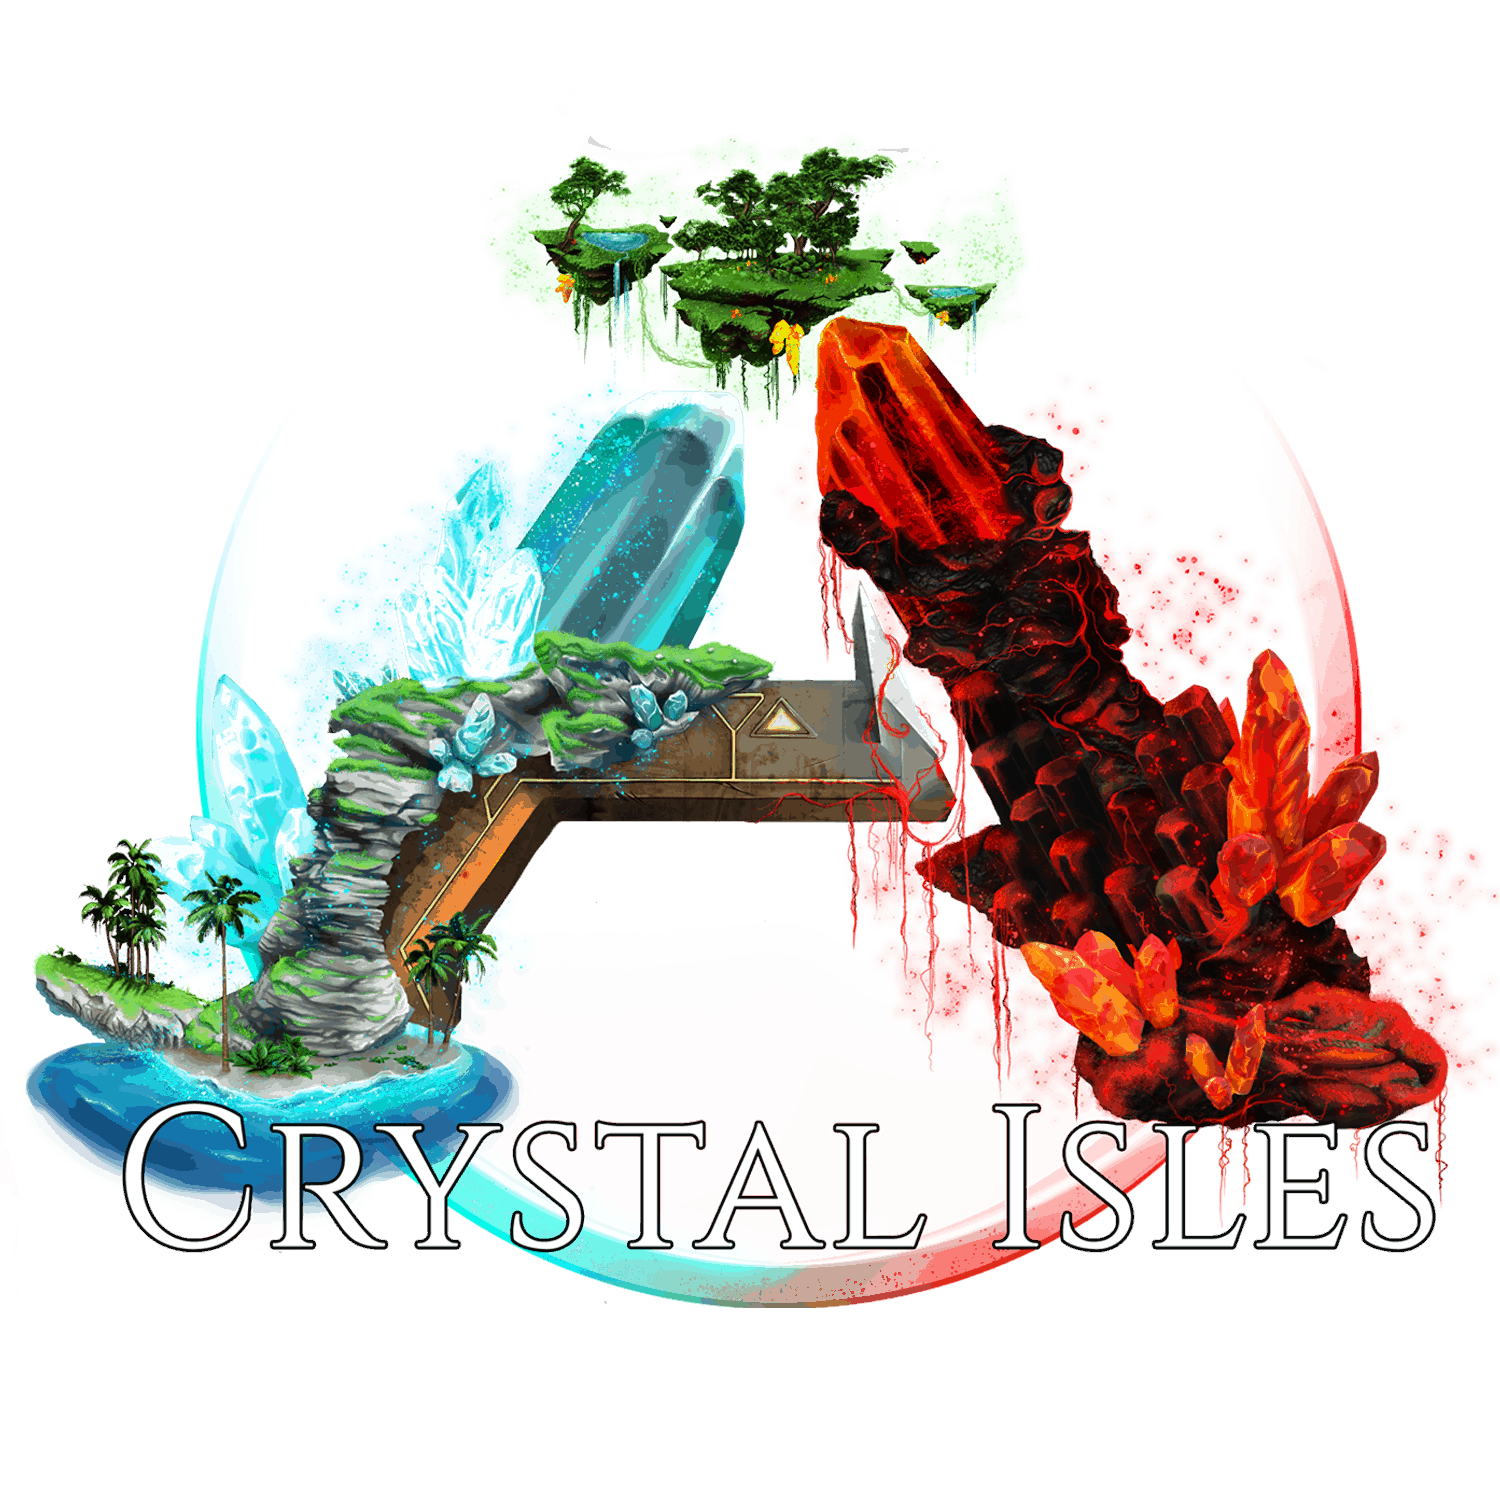 Image showing Crystal Isles DLC supported